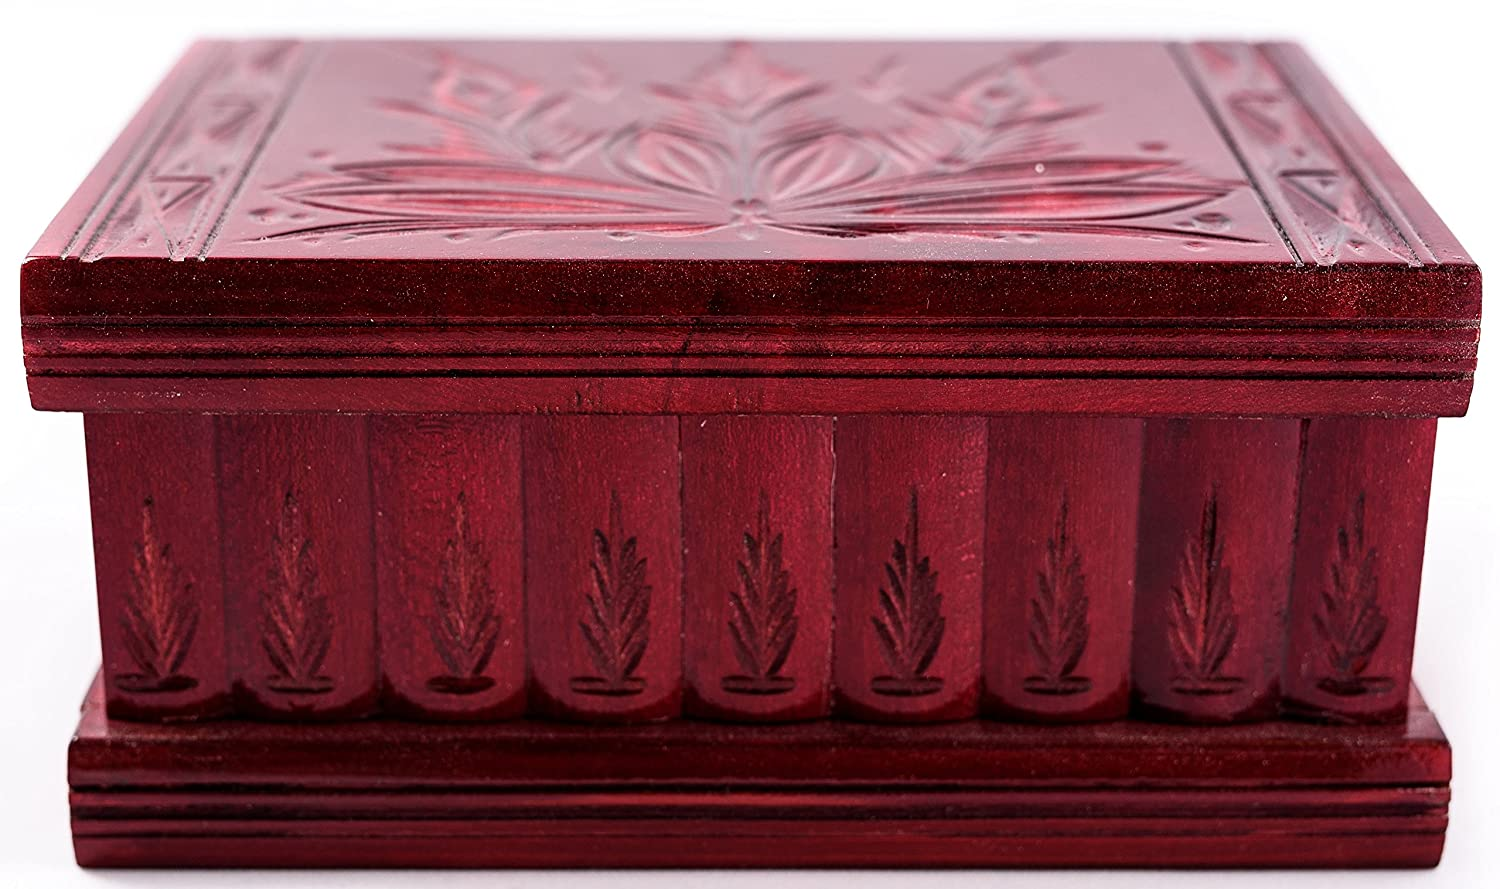 Handmade Wooden Puzzle Boxes with Hidden Compartment (Large) - Top Quality Elegant Box with Easy Open/Closing Mechanism - Decorative Storage Box for Jewelry, Toys, Puzzles - Great Gift All Red